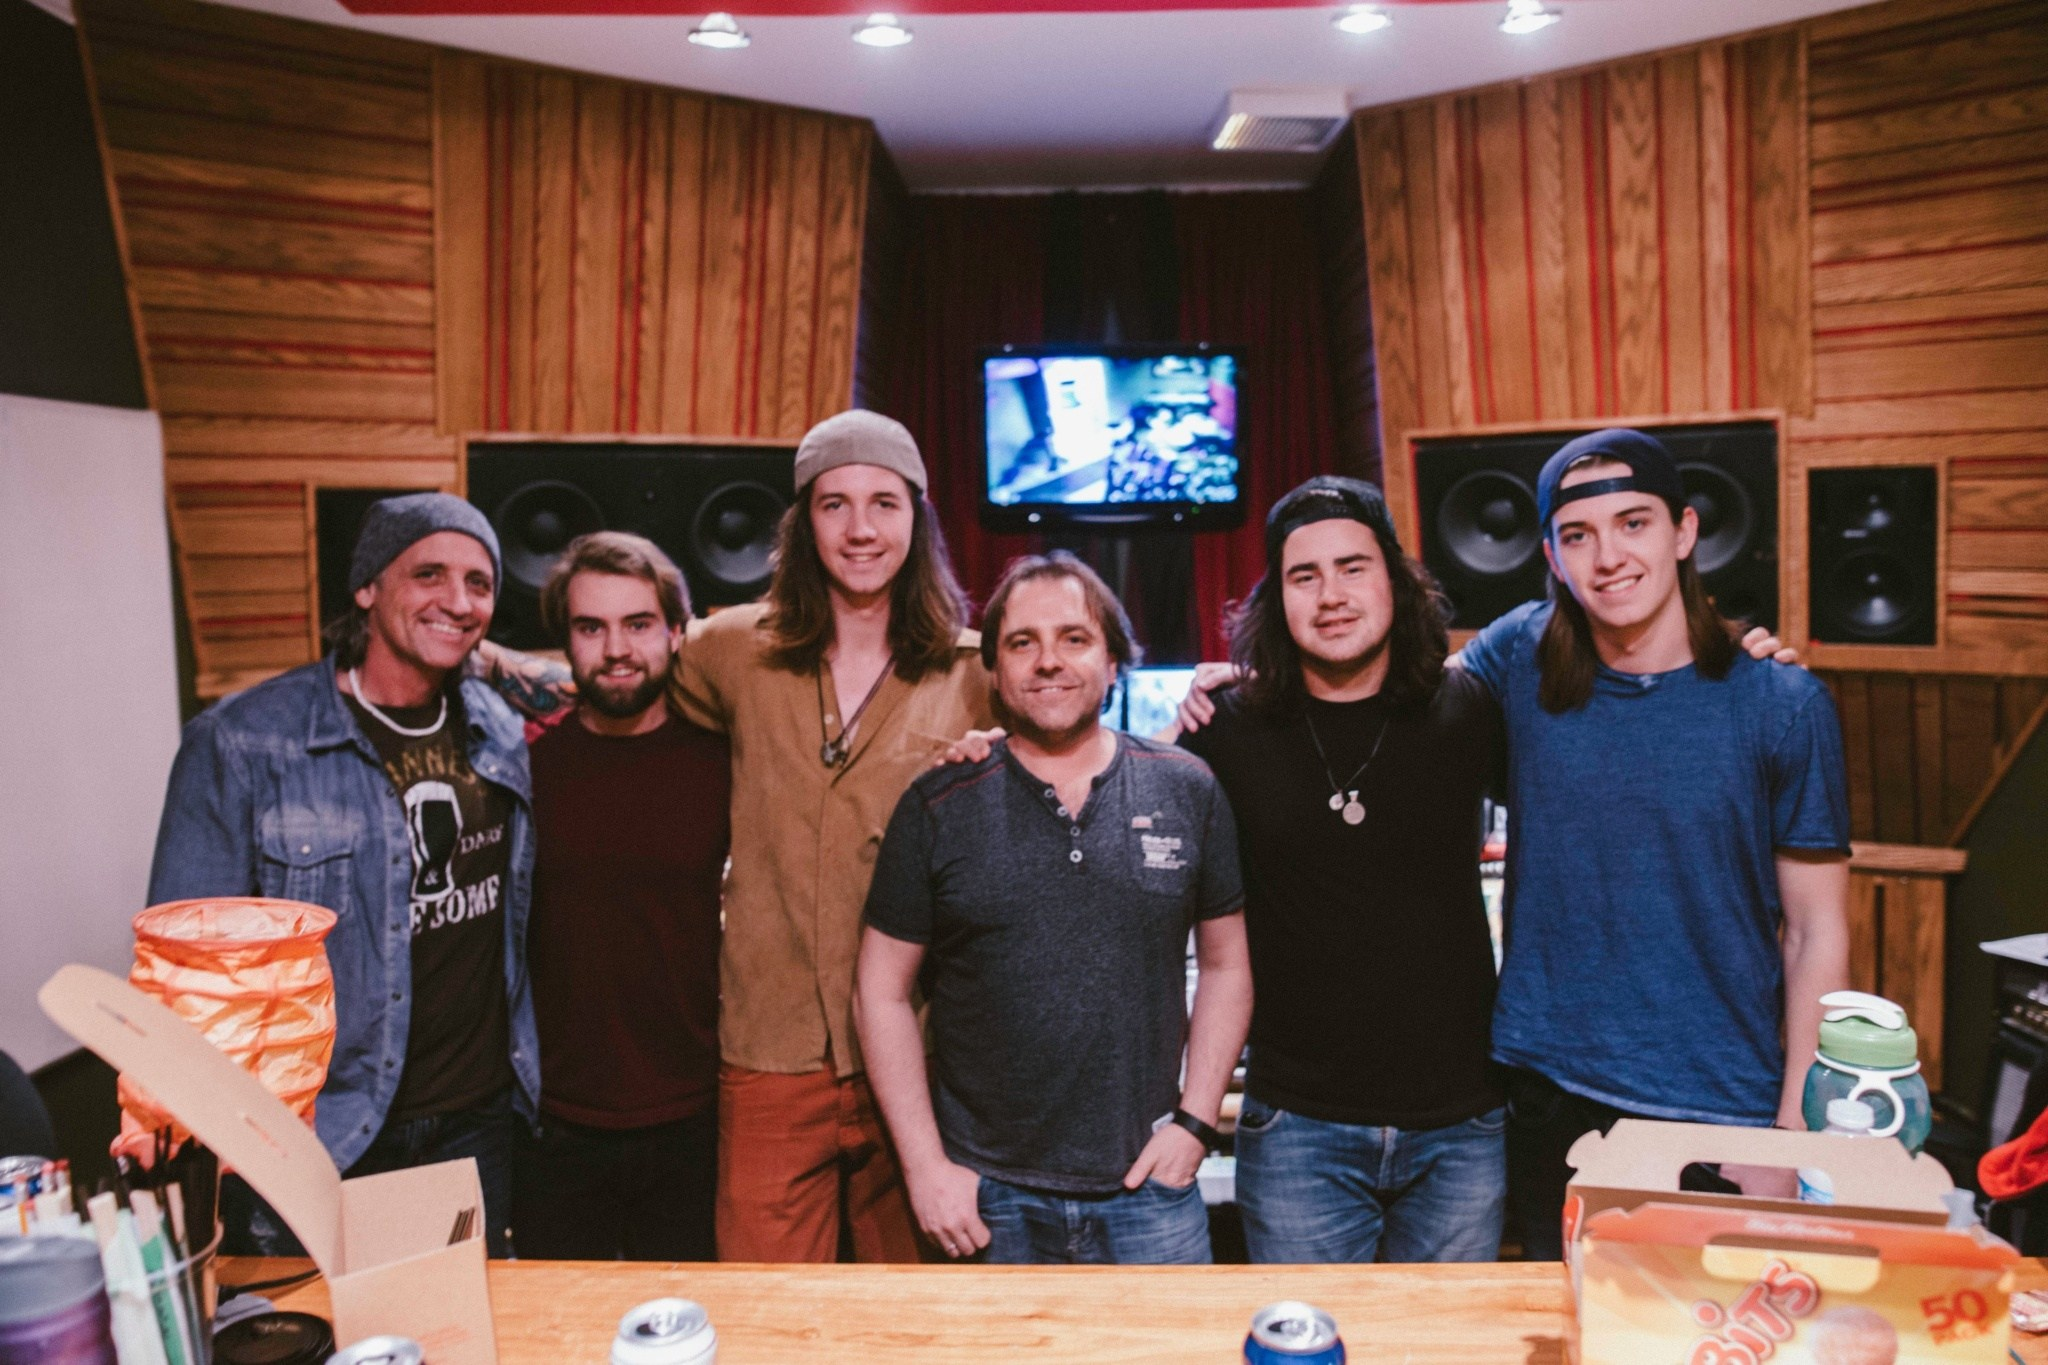 MCC Recording Studio - Calgary, AB - We had 'In The Distance', 'Won't Forget Your Love' and 'My Ecstasy' in the bag at MCC Recording Studio with Engineer, Johnny Gasparic – later mixed by Cedrick Courtois. 'In The Distance' was the first single we chose to launch this campaign.